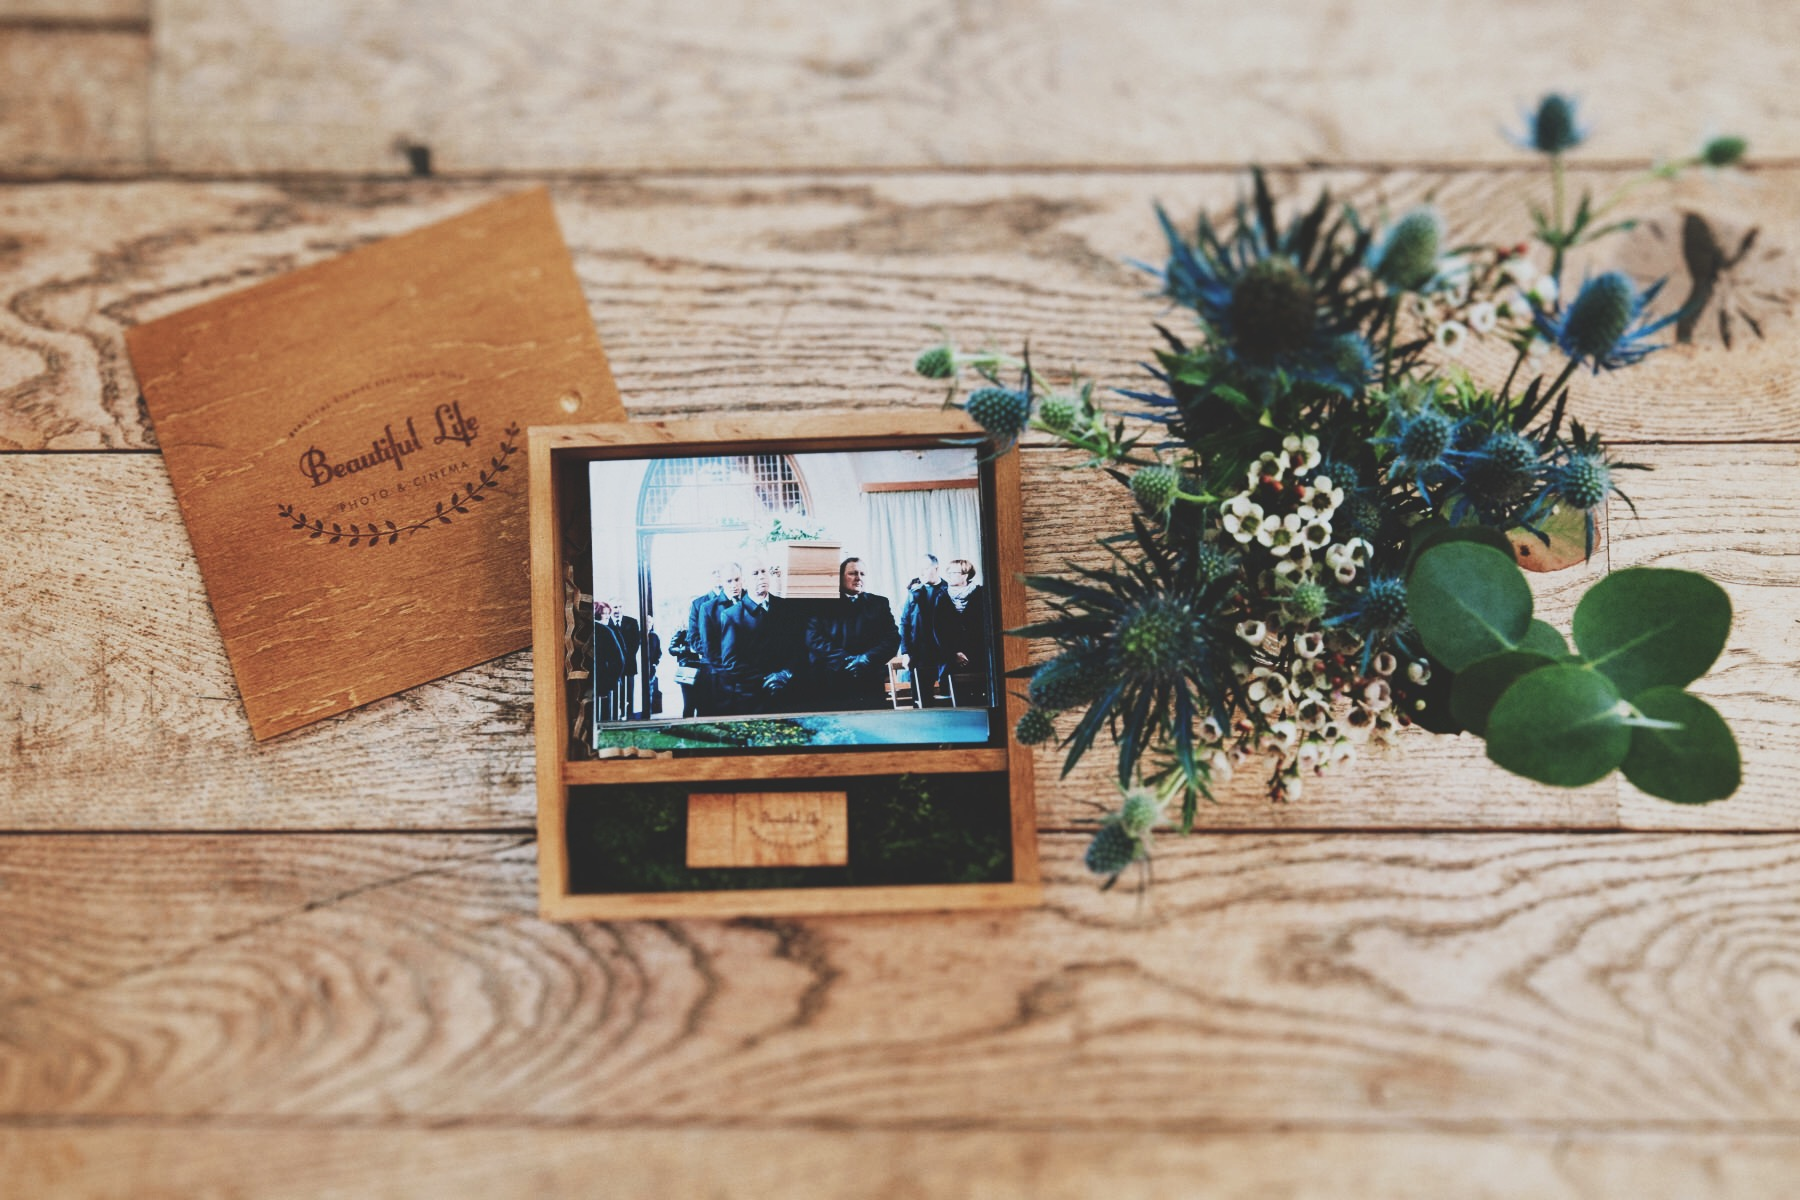 USb Keepsake Boxes for storing your photos and films